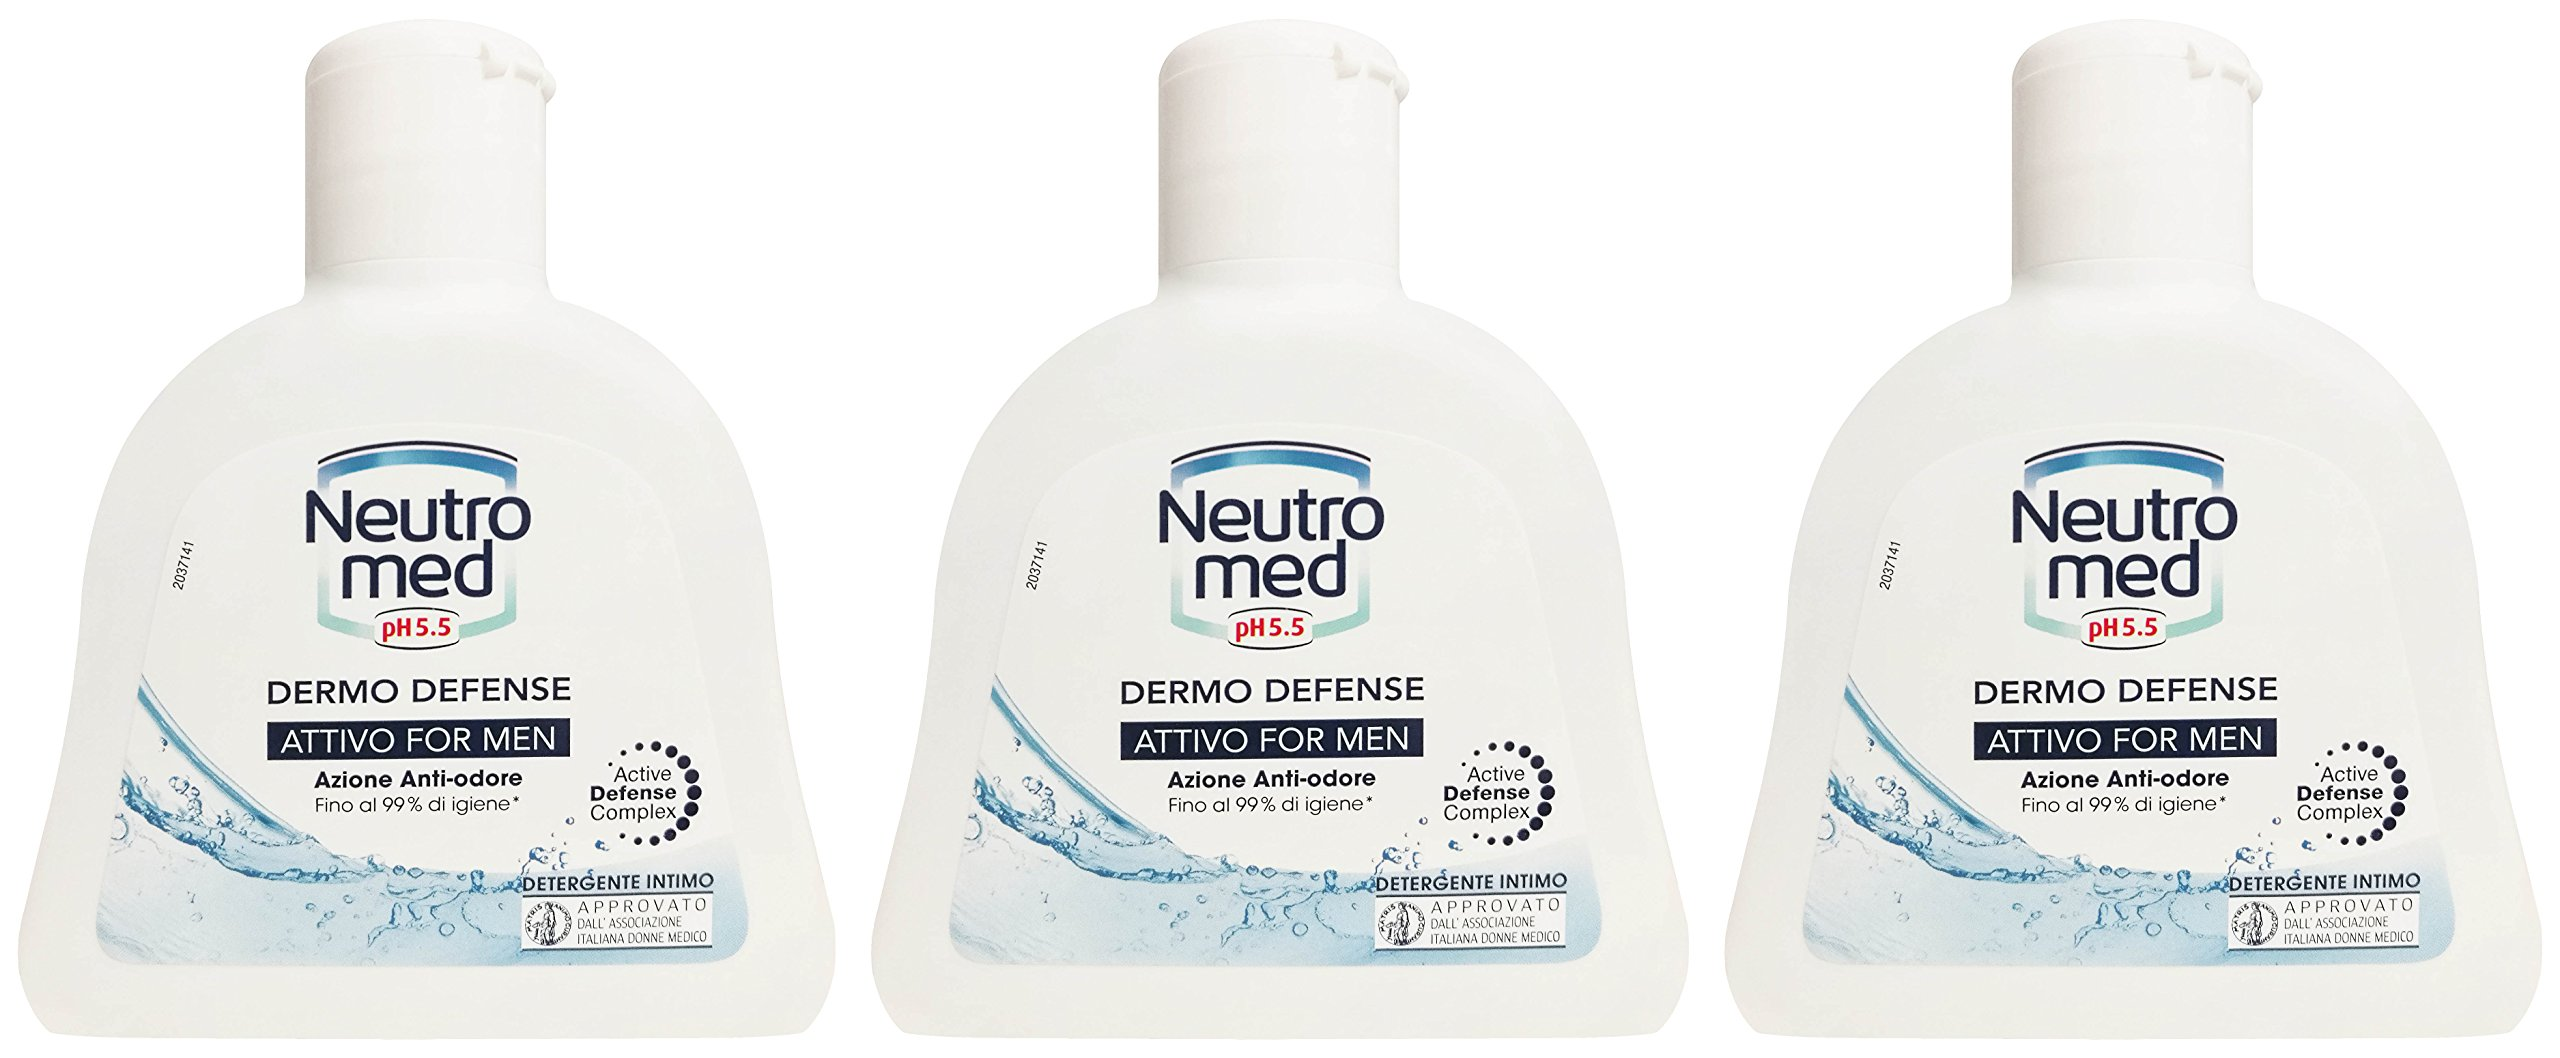 Neutromed: Active for Men Intimate Cleanser, Dermo-Defense Line - 6.76 Fluid Ounces (200ml) Bottles (Pack of 3) [ Italian Import ]